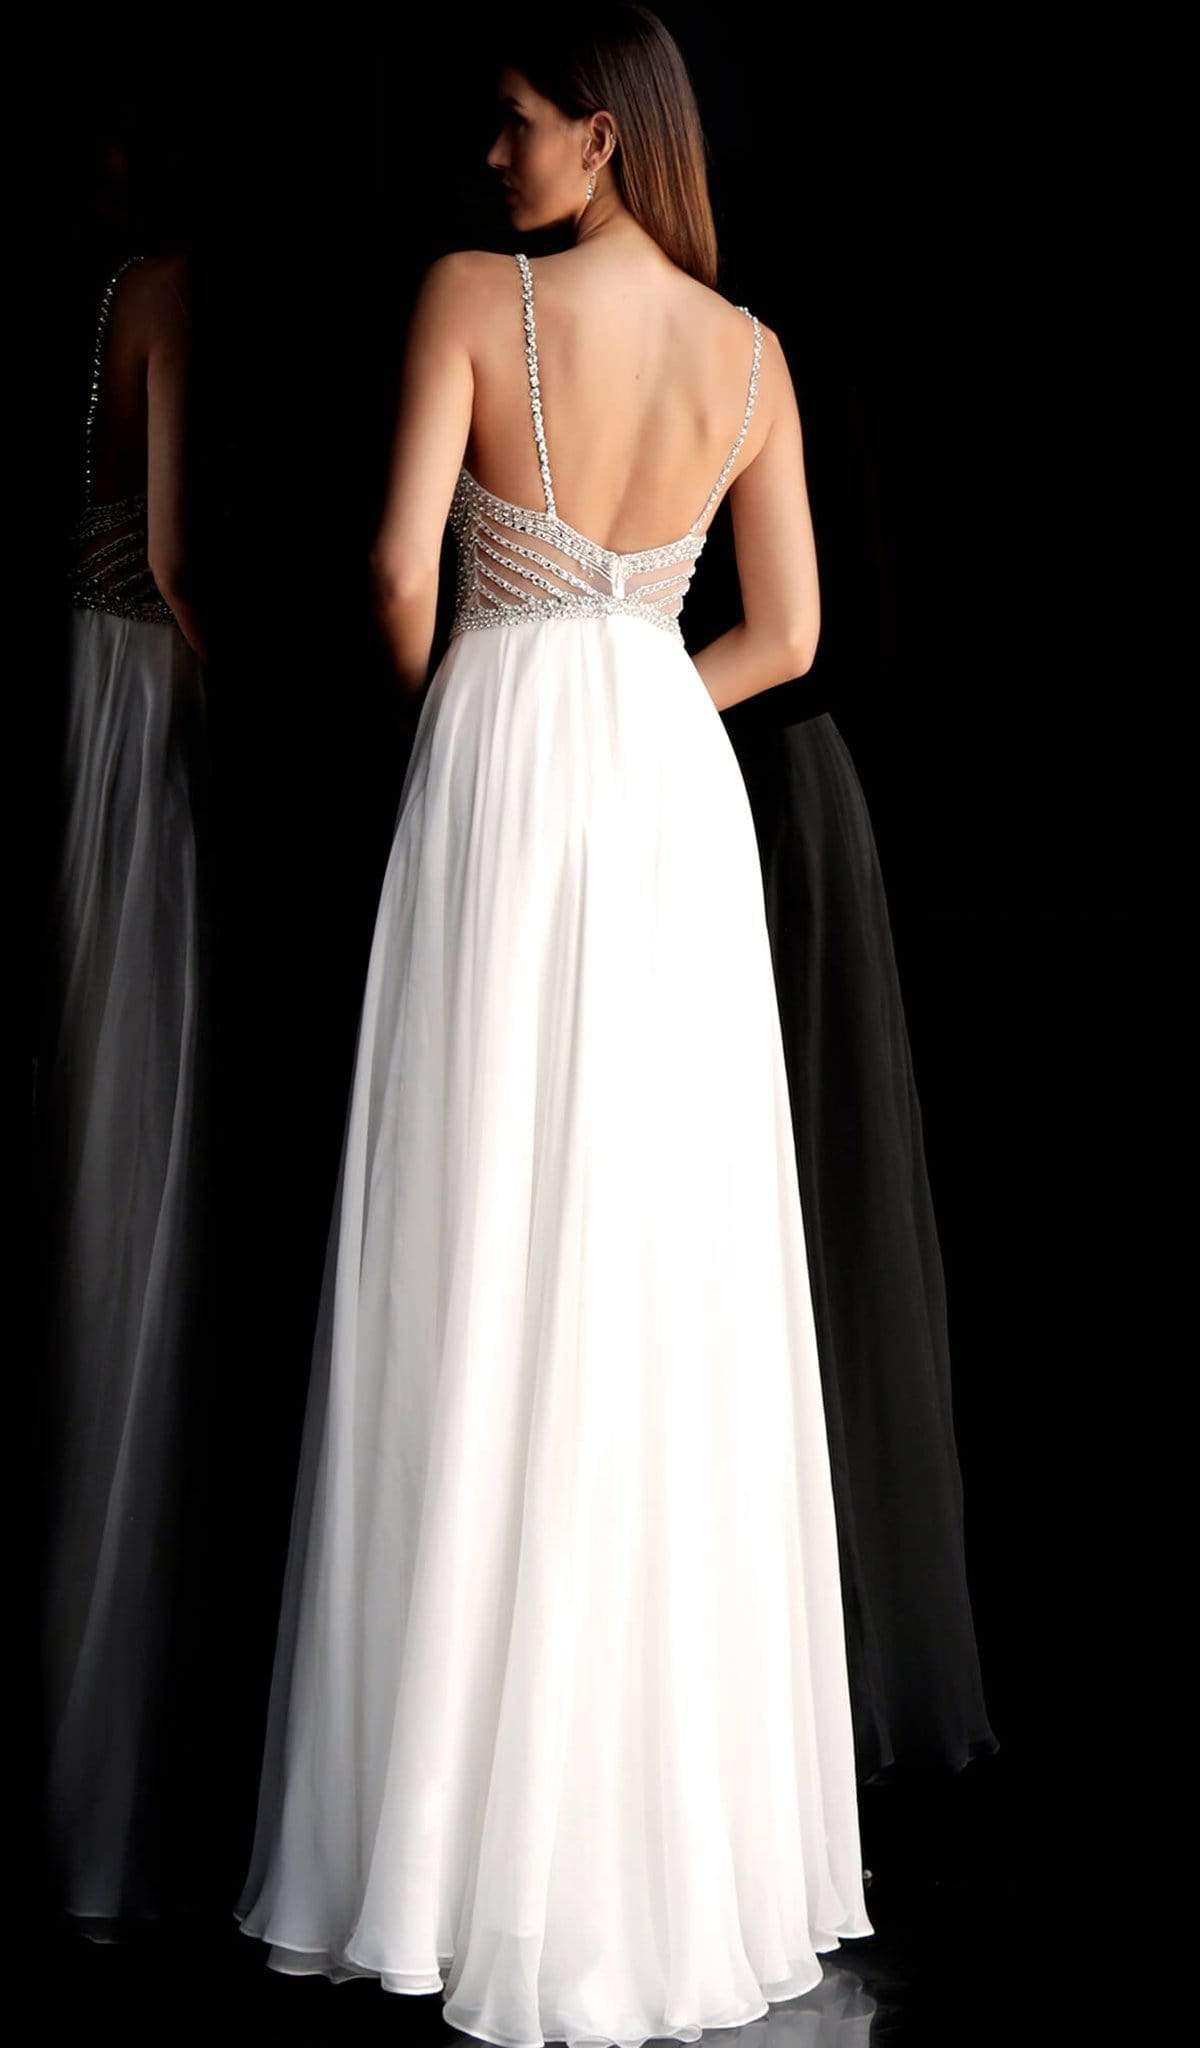 Jovani - Beaded Plunging V-neck Chiffon A-line Dress 66925 In White